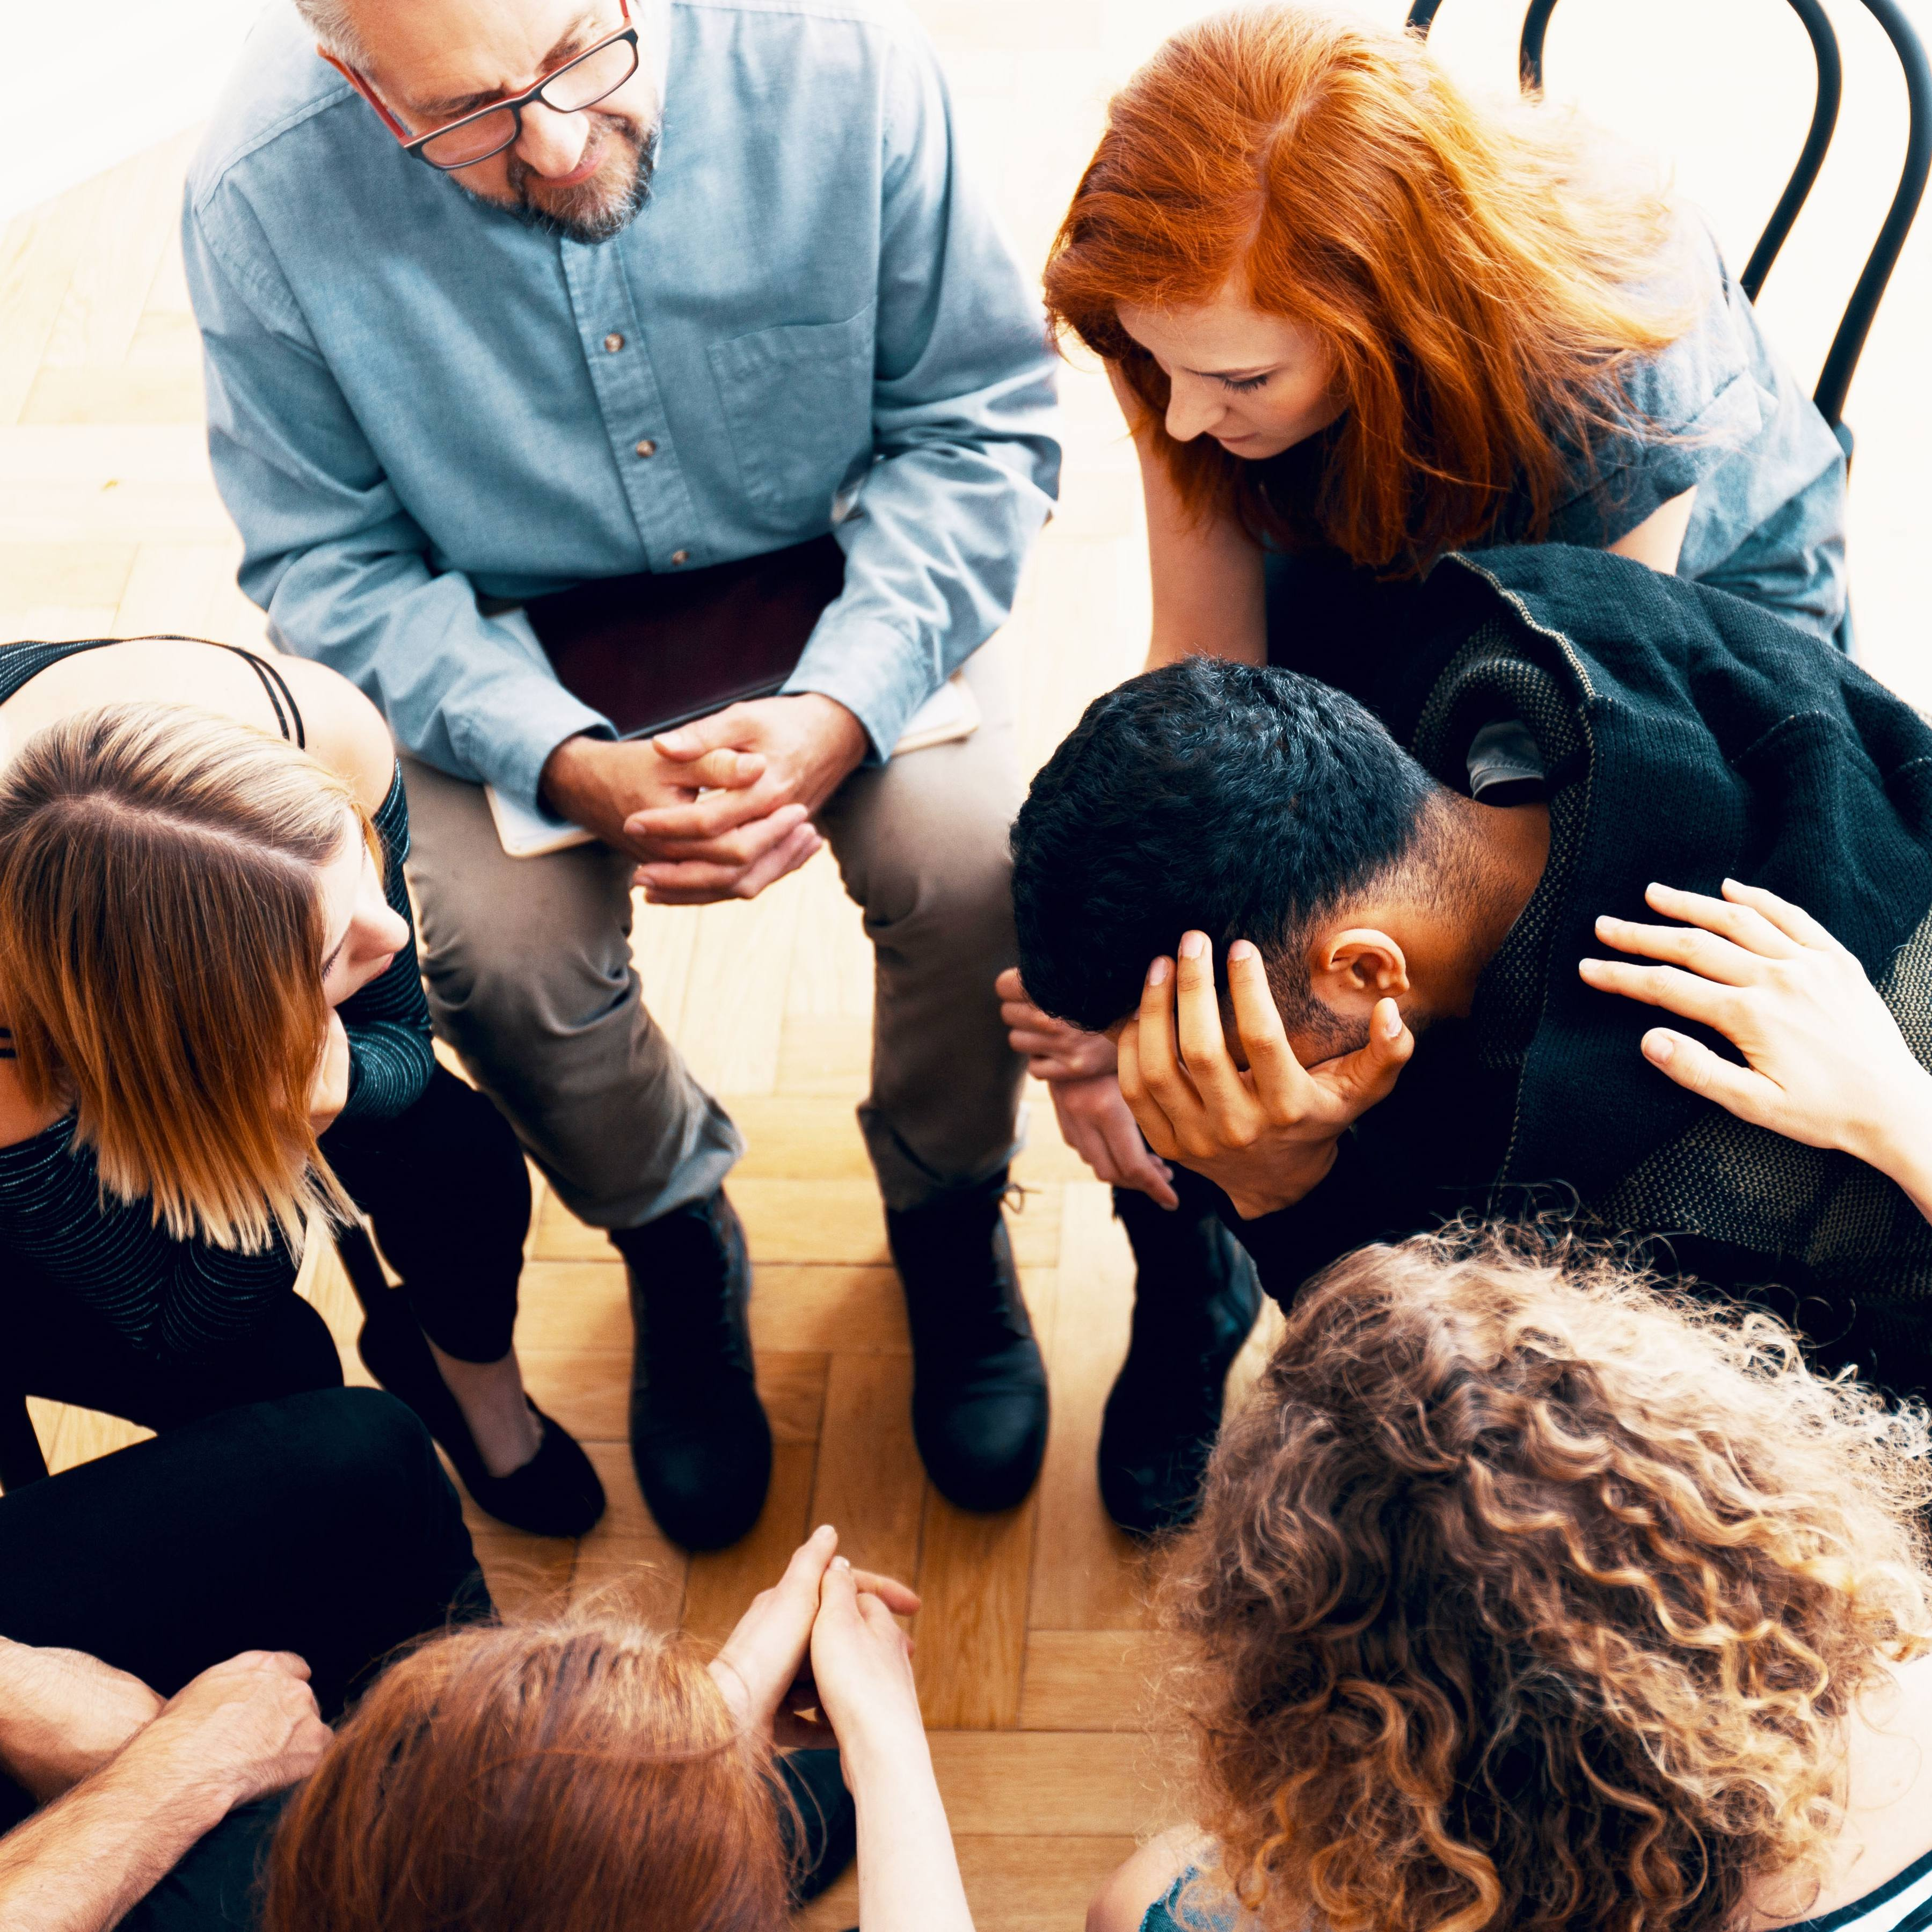 a group of young adults or teenagers in a circle, who are in counseling therapy, supporting and helping each other with depression, sadness, maybe suicidal thoughts